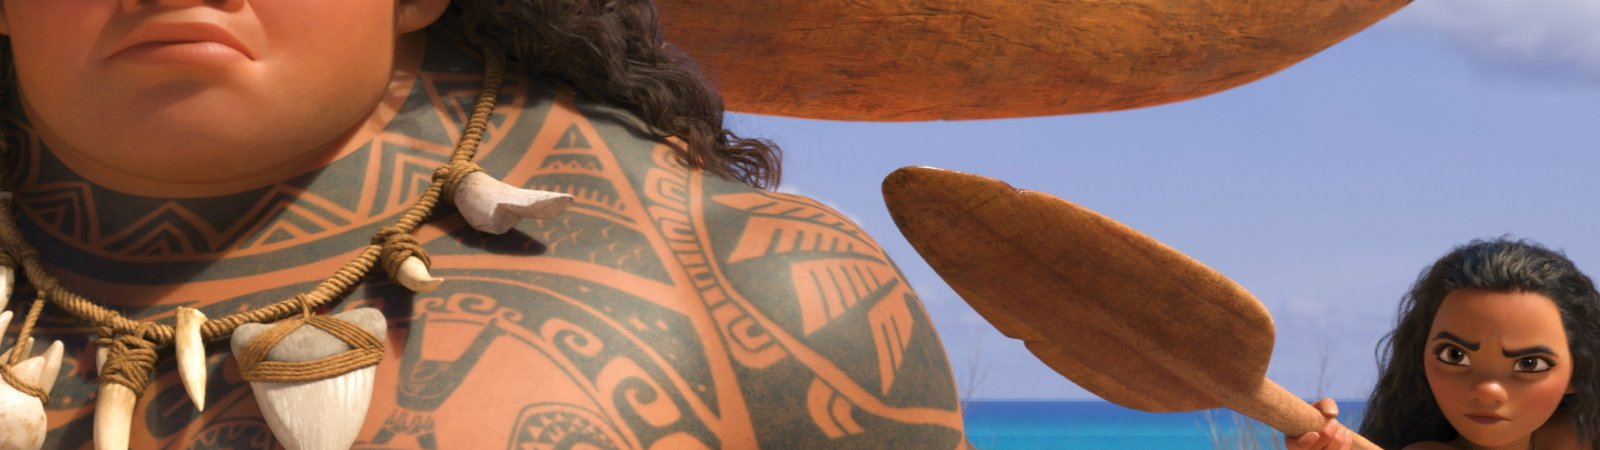 Photo du film : Vaiana, la légende du bout du monde